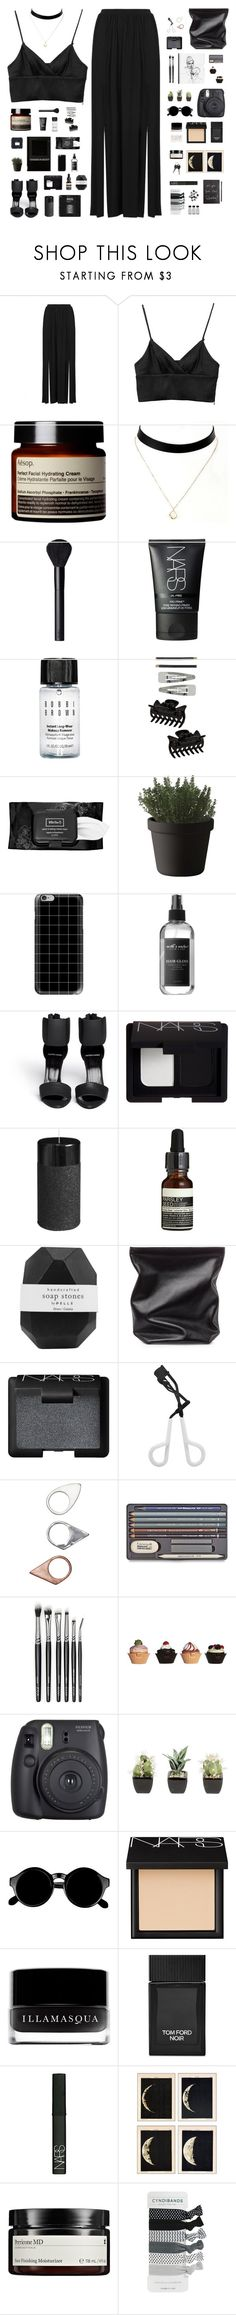 """Lee Hyori - Black"" by nut-and-nude ❤ liked on Polyvore featuring Topshop, Monki, Aesop, NARS Cosmetics, Bobbi Brown Cosmetics, Dorothy Perkins, Kat Von D, Muuto, Casetify and Earth's Nectar"